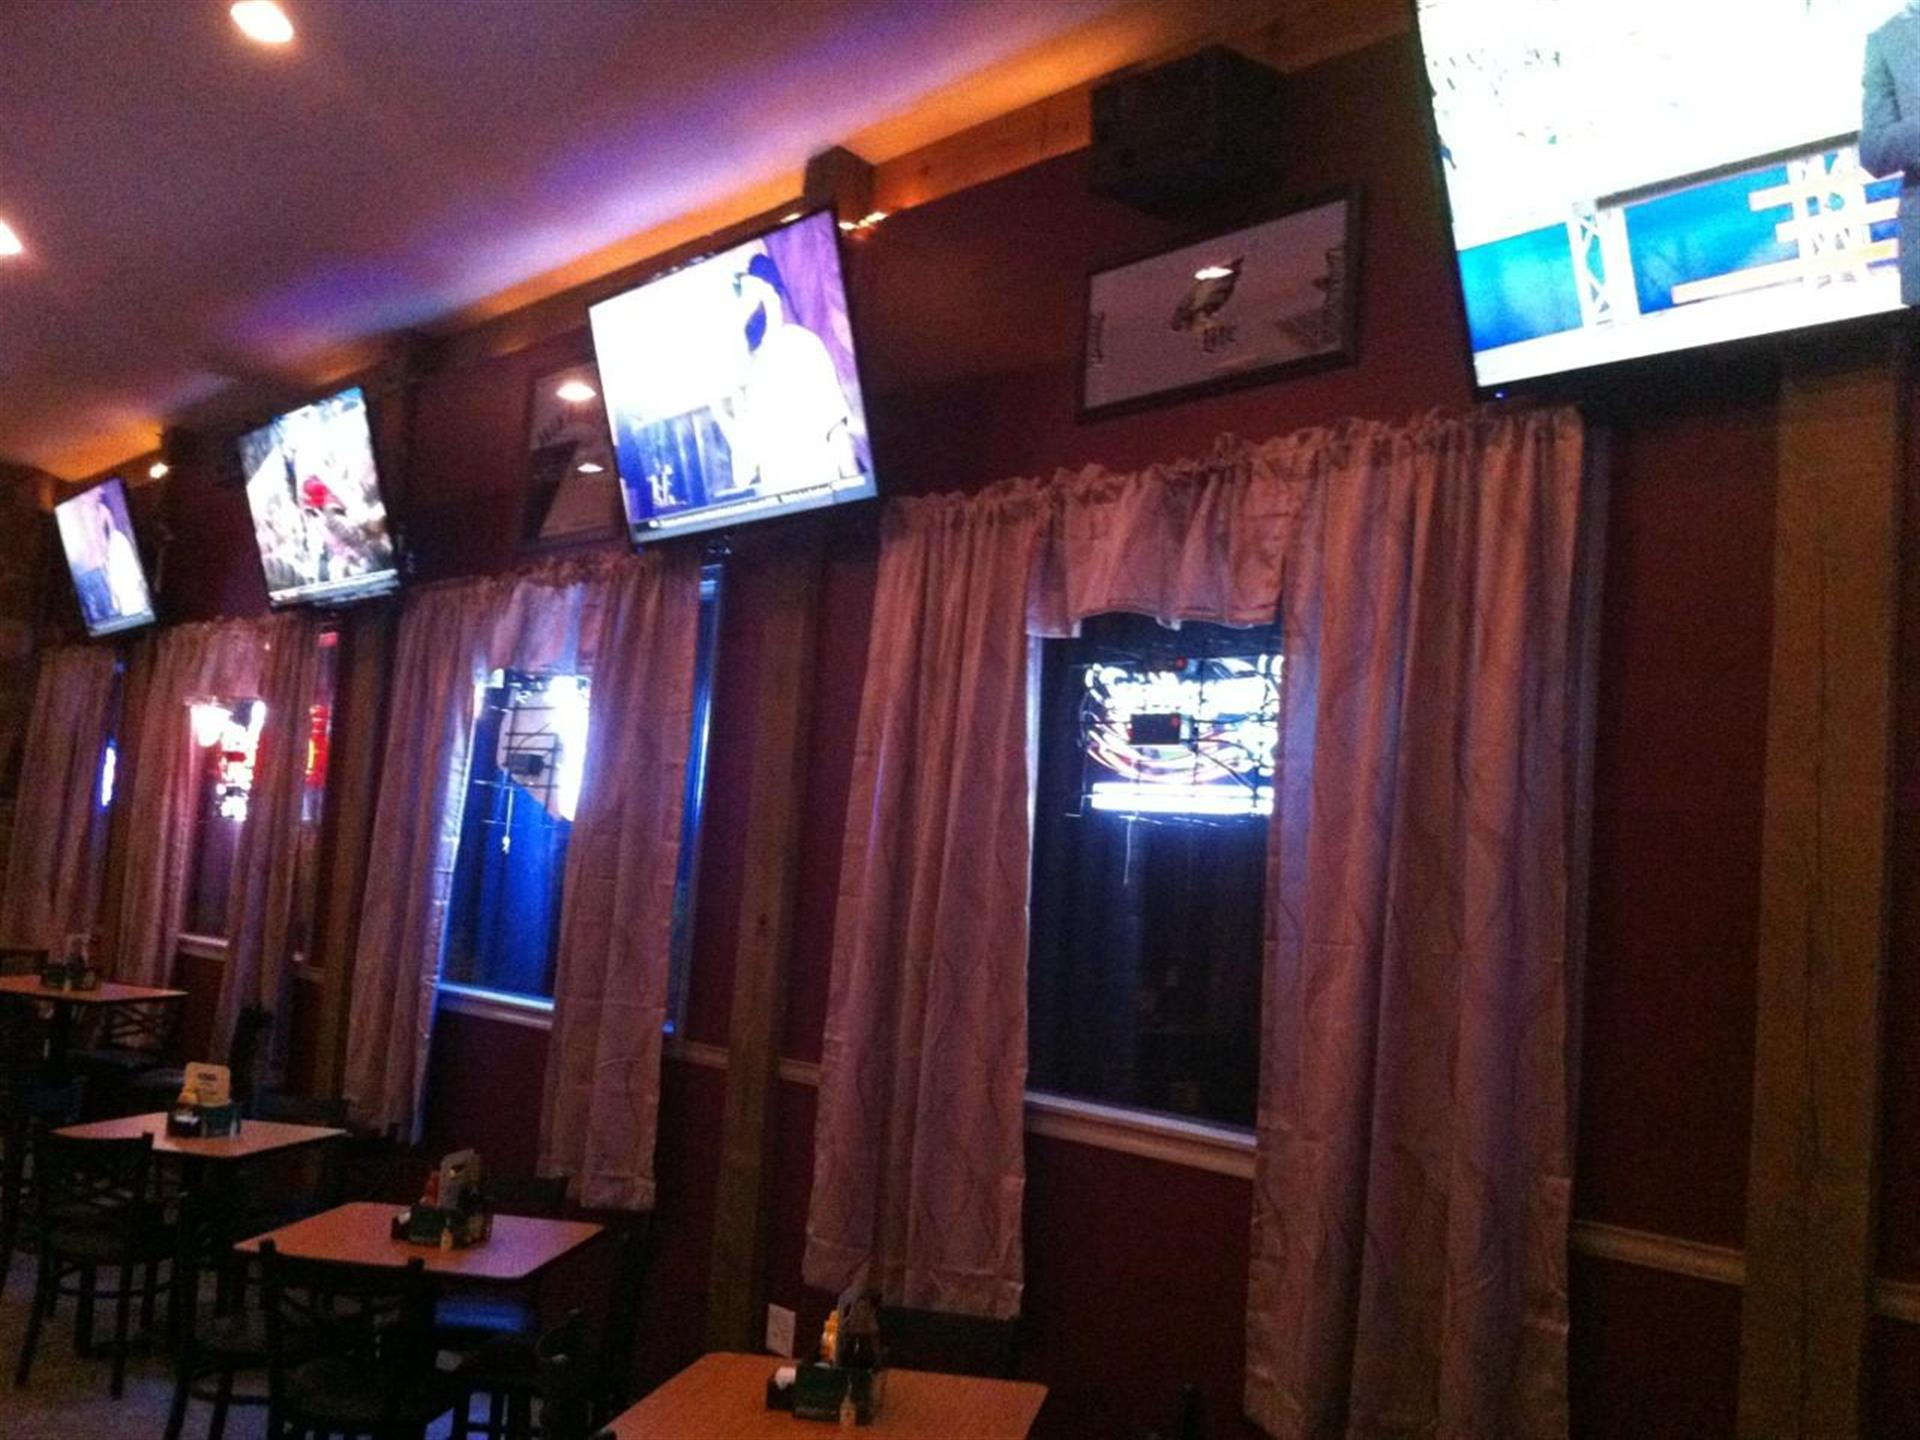 Interior shot the Pub. TV screens over the windows